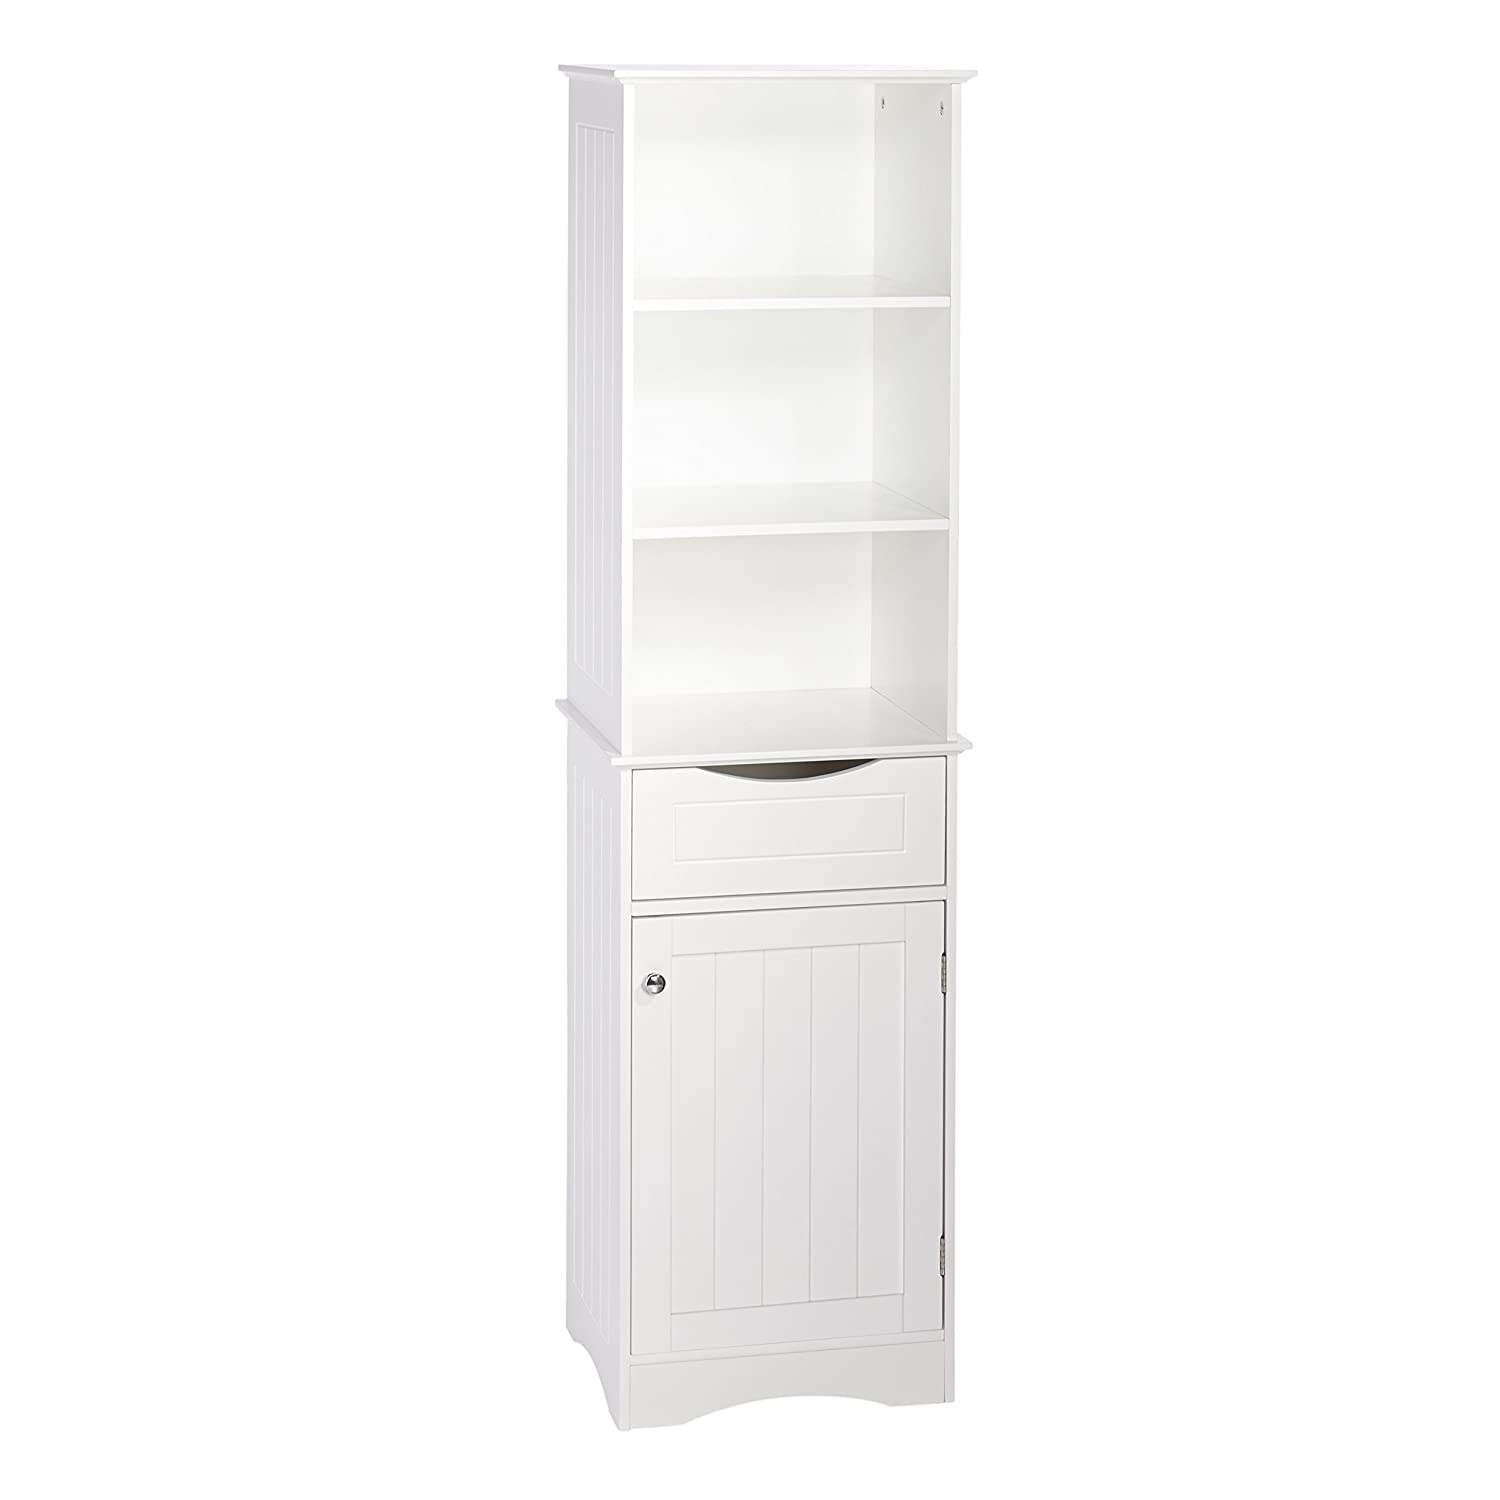 shop pantry tall cabinets peter cabinet int door drawer hay internal